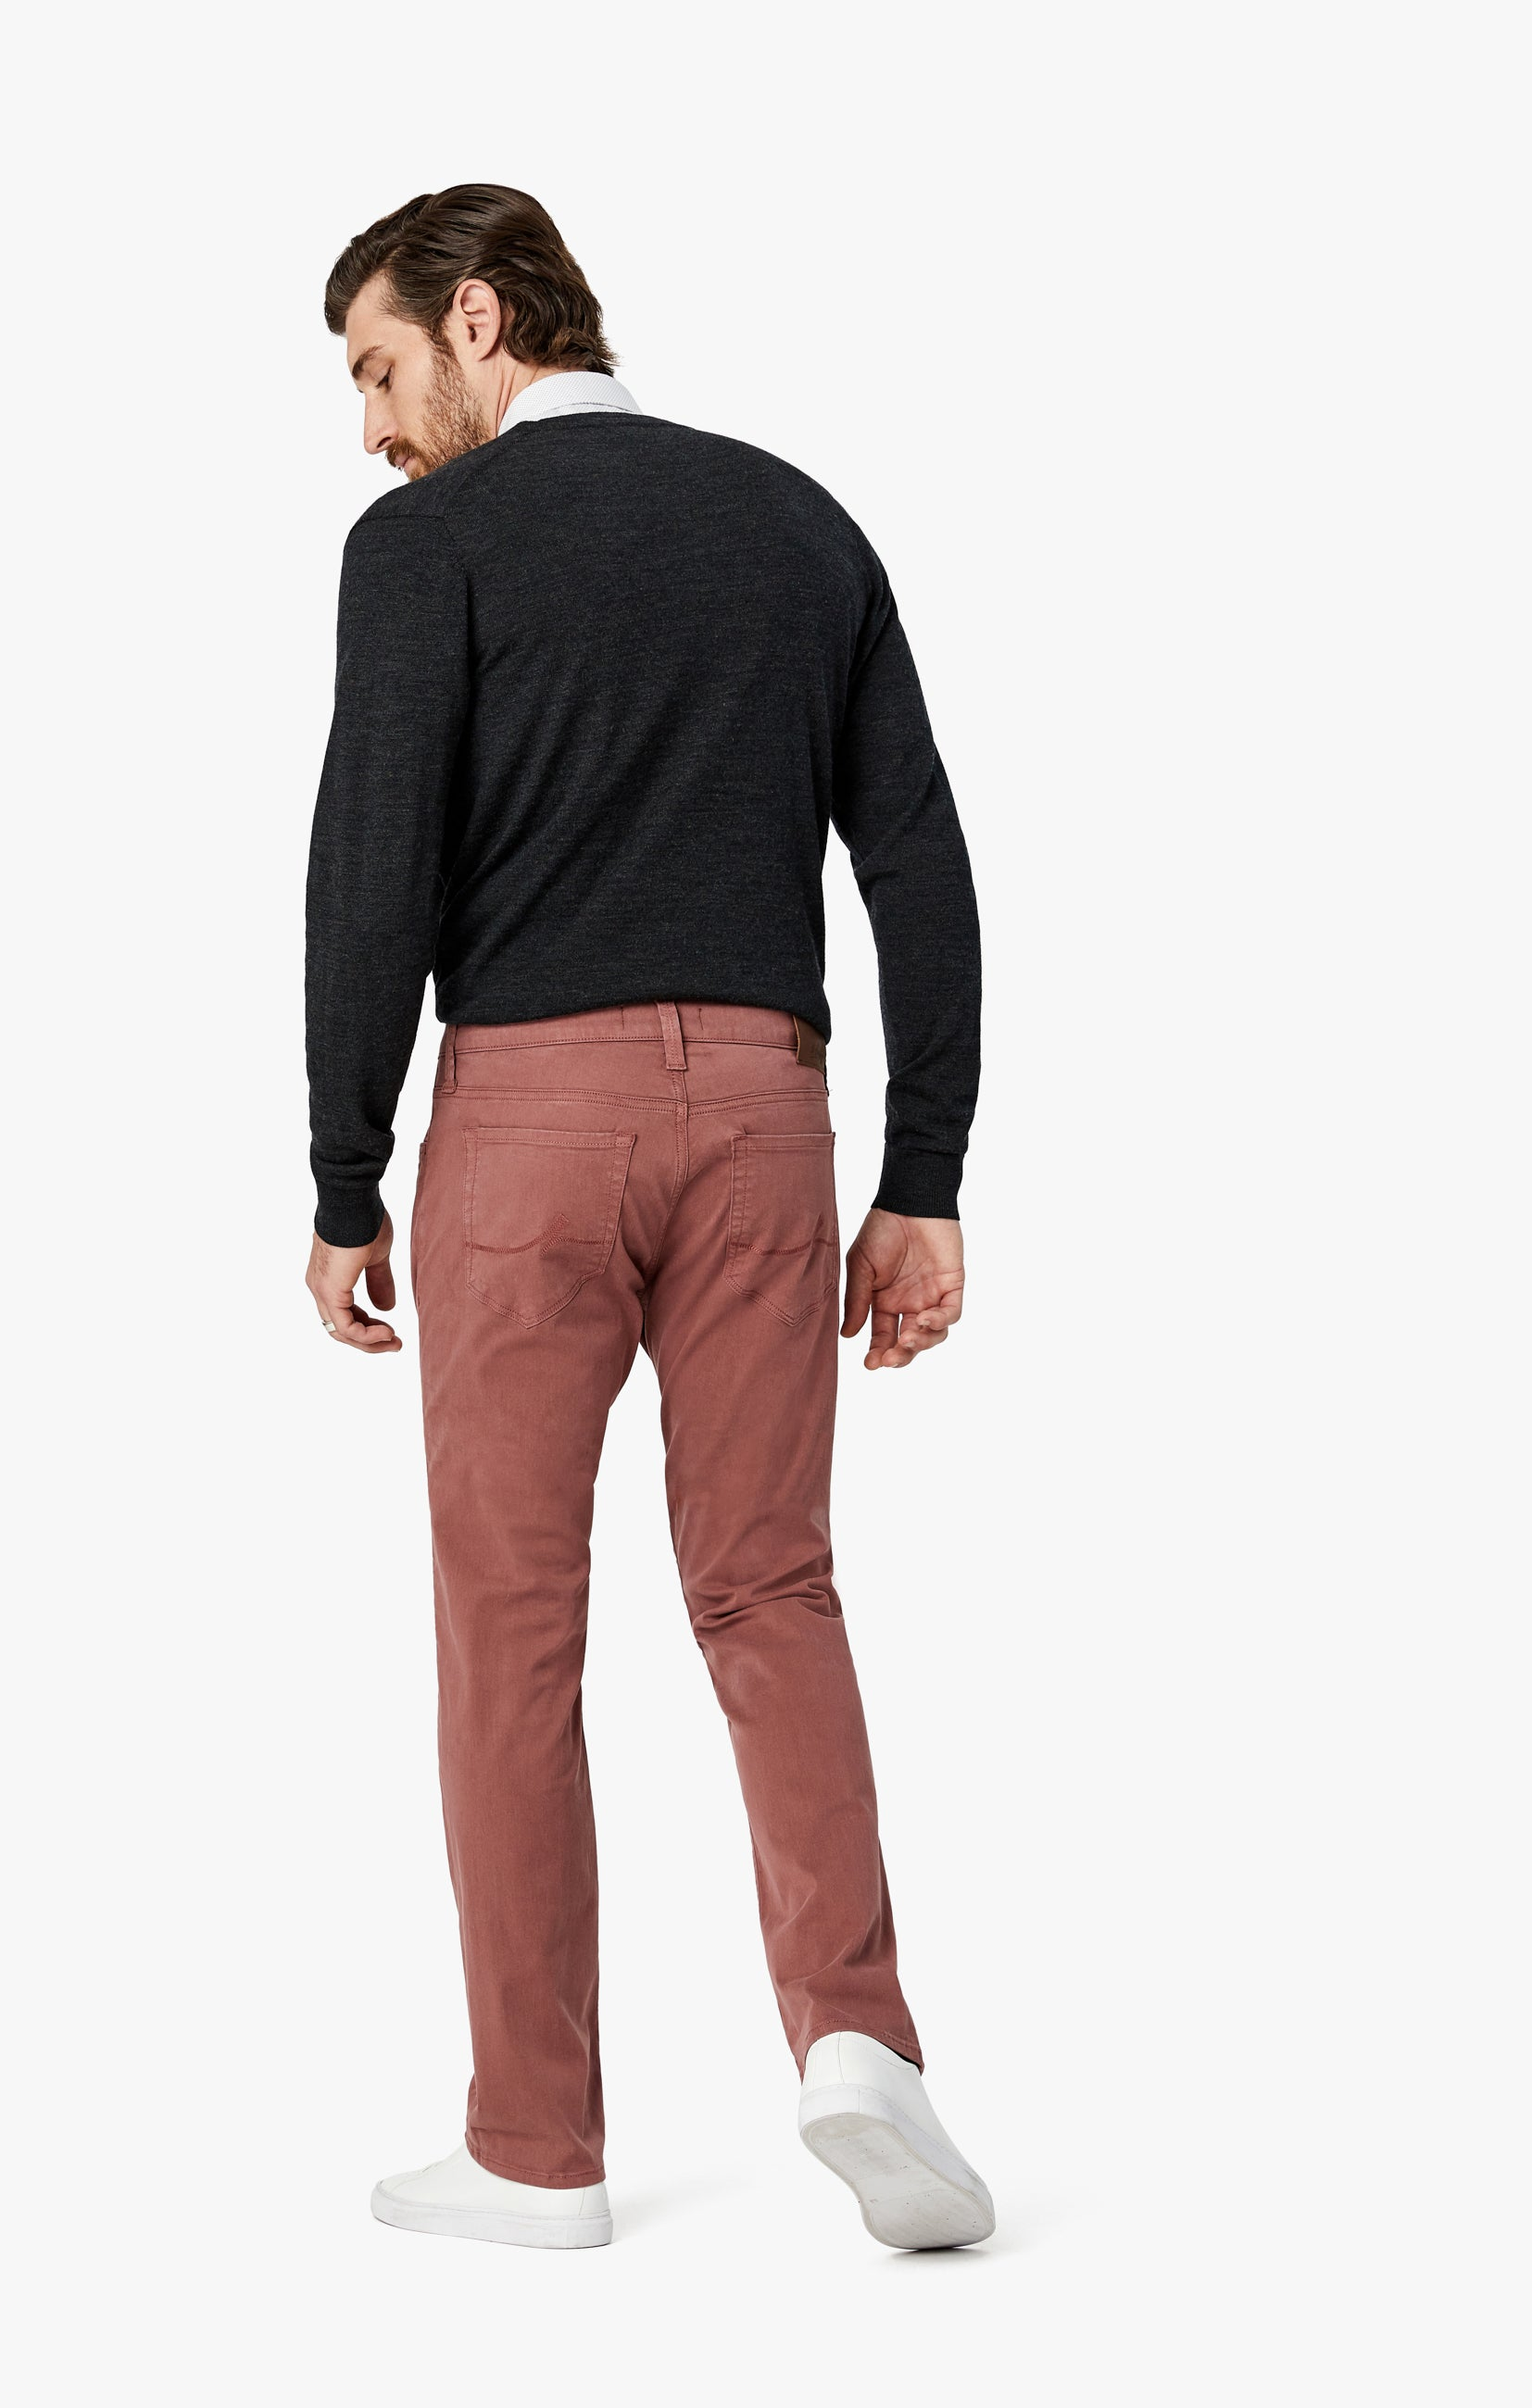 Courage Straight Leg Pants in Berry Twill Image 9